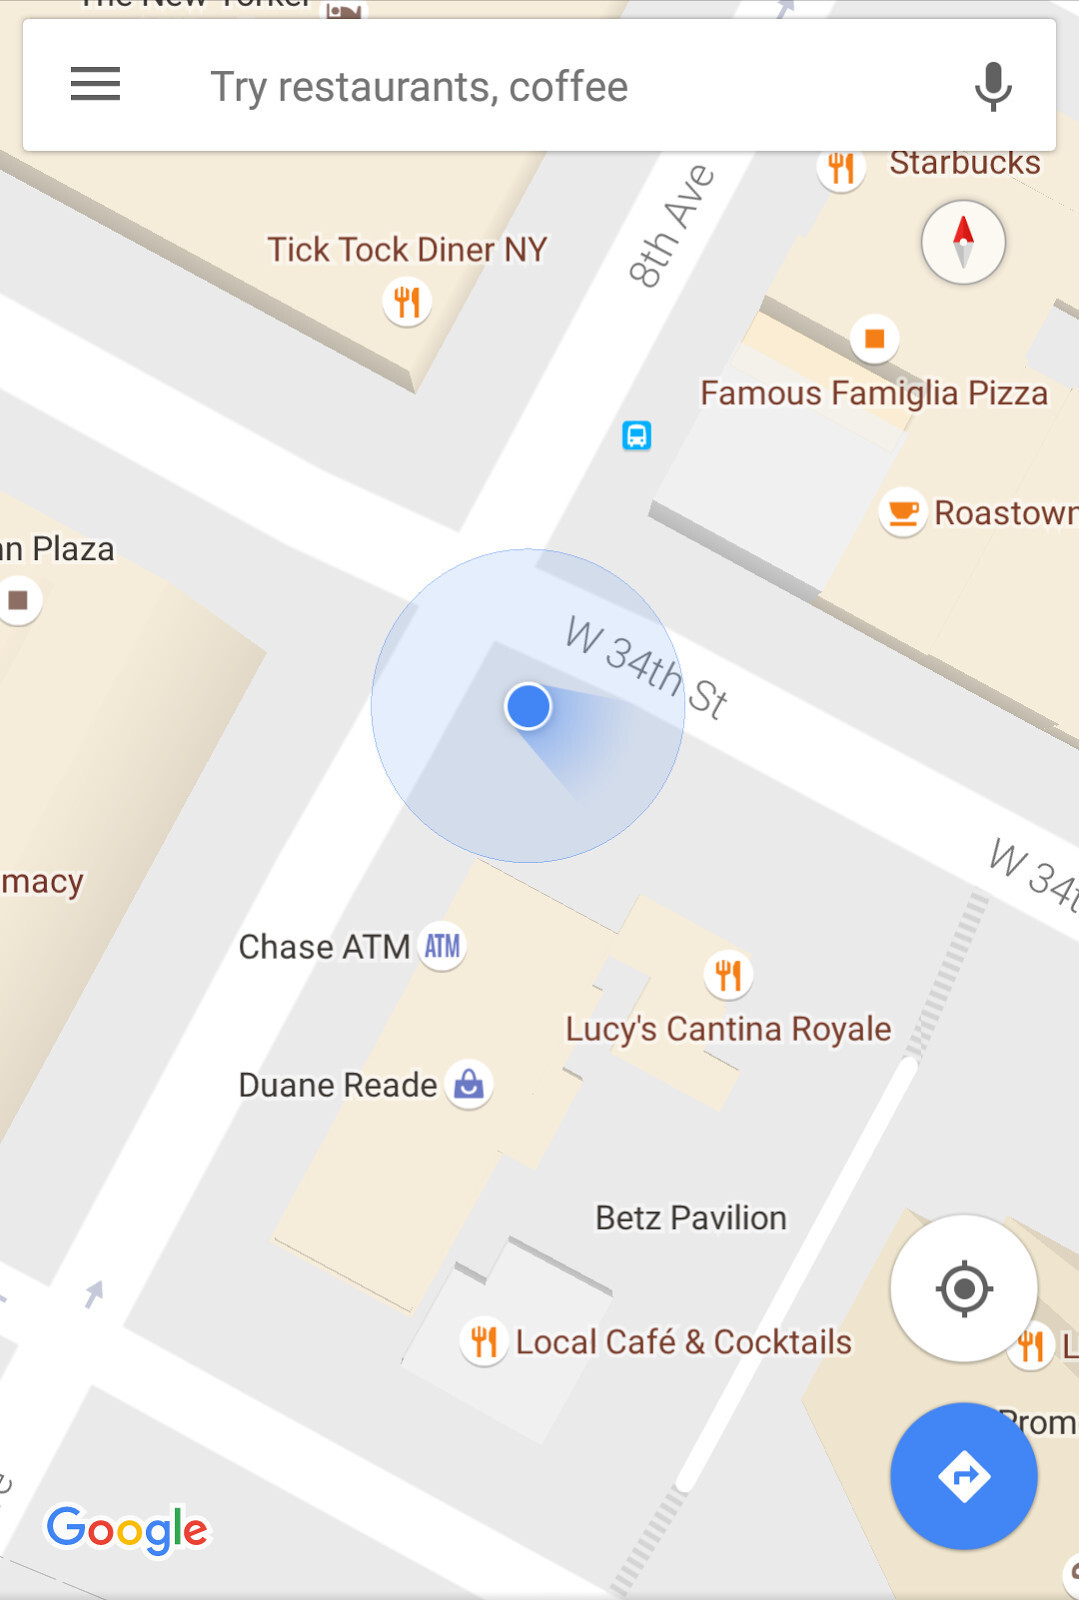 Google Maps for Android drops direction arrow in favor of a blue